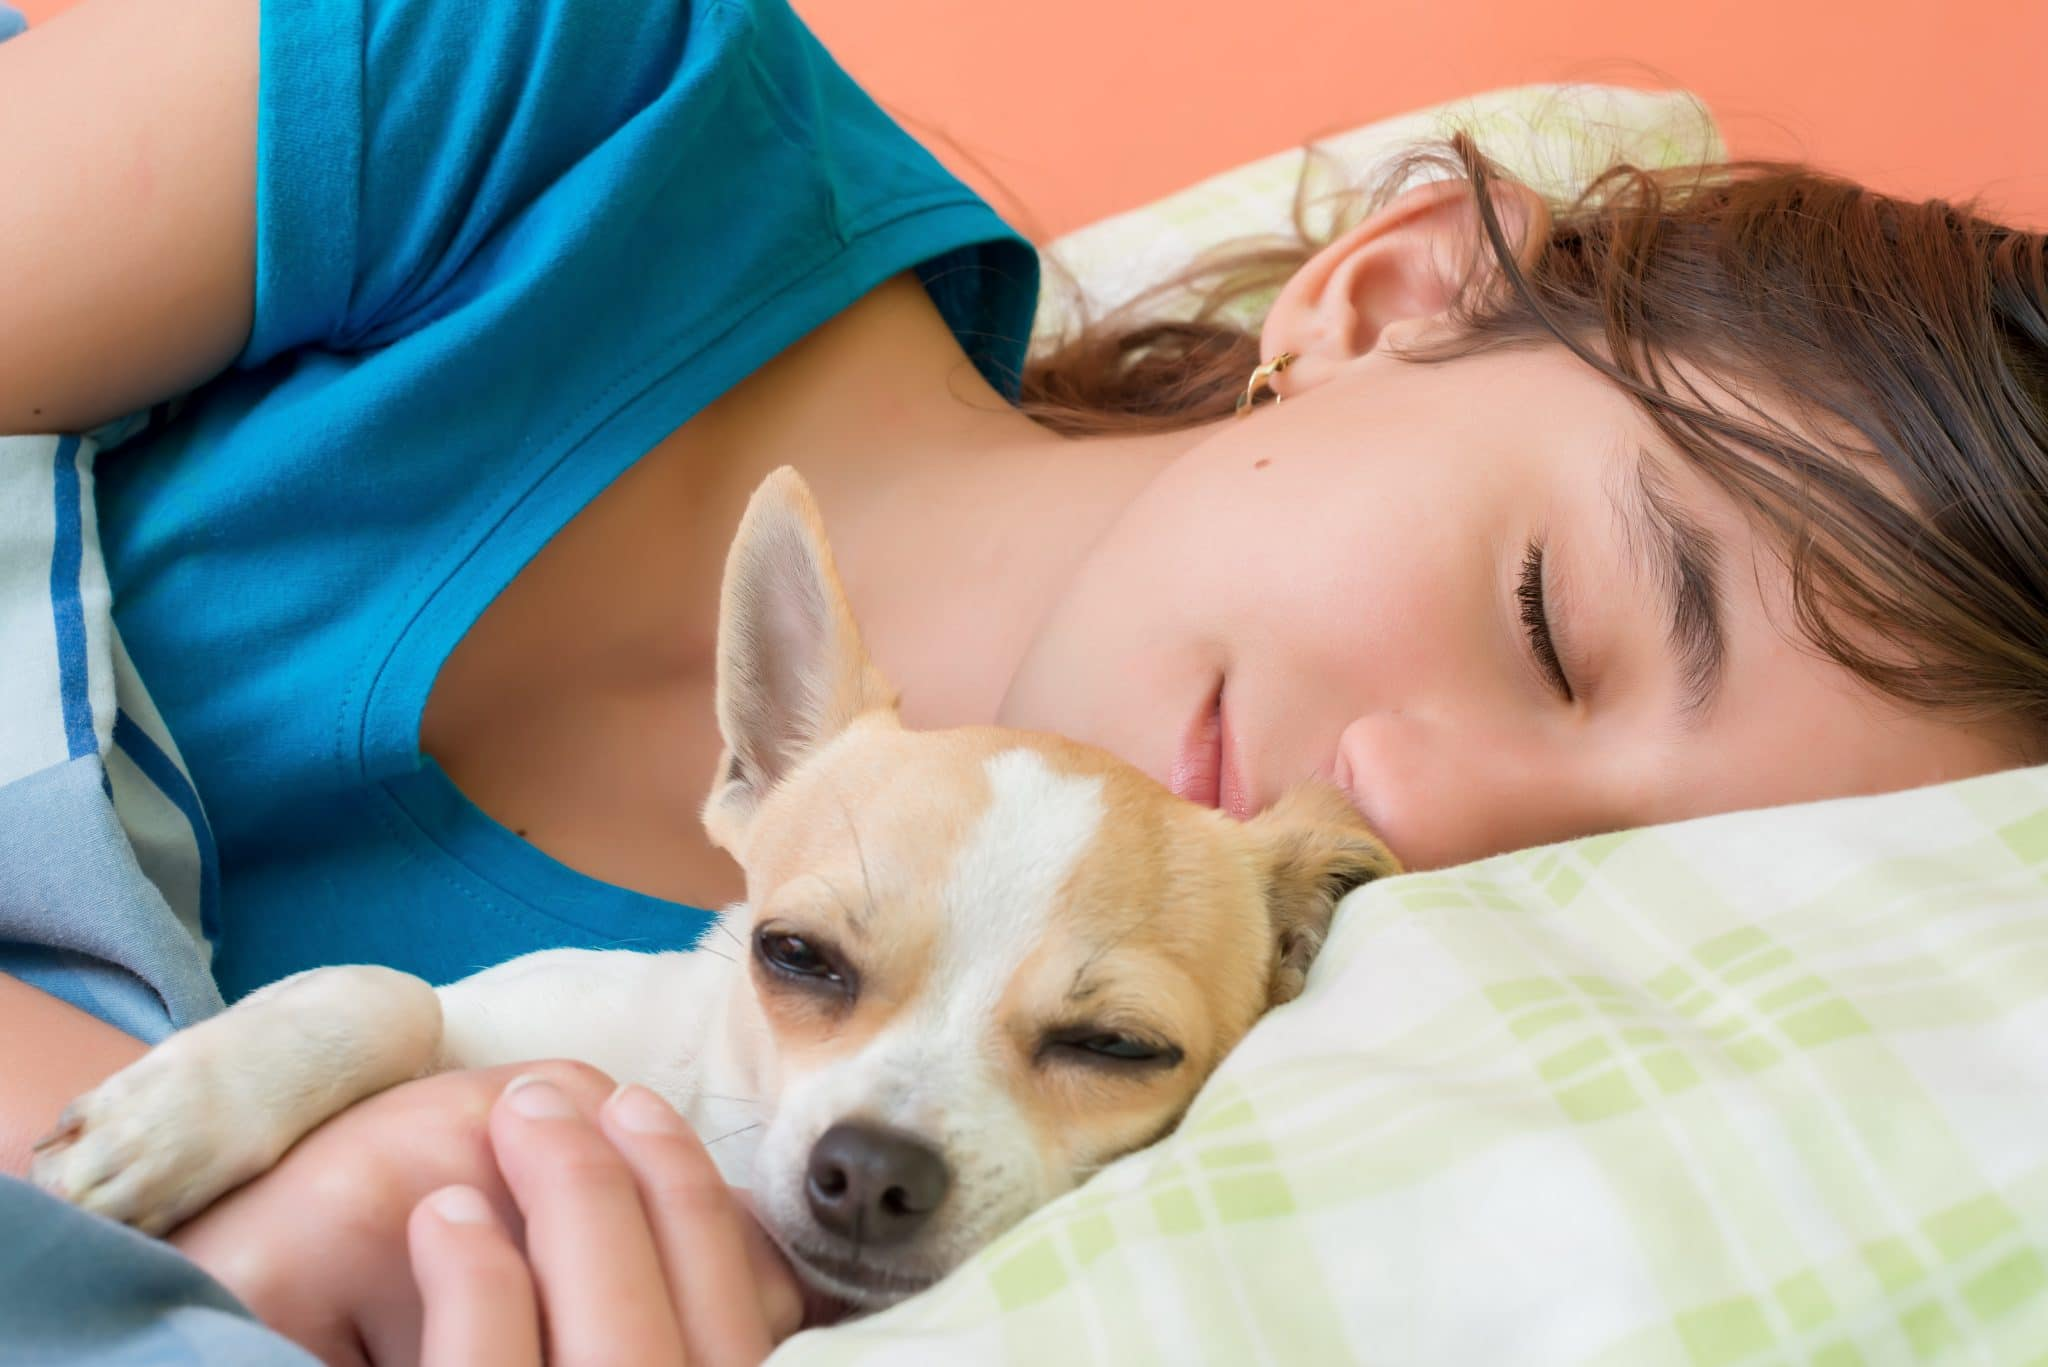 Safety Tips For Sleeping With Your Small Dog